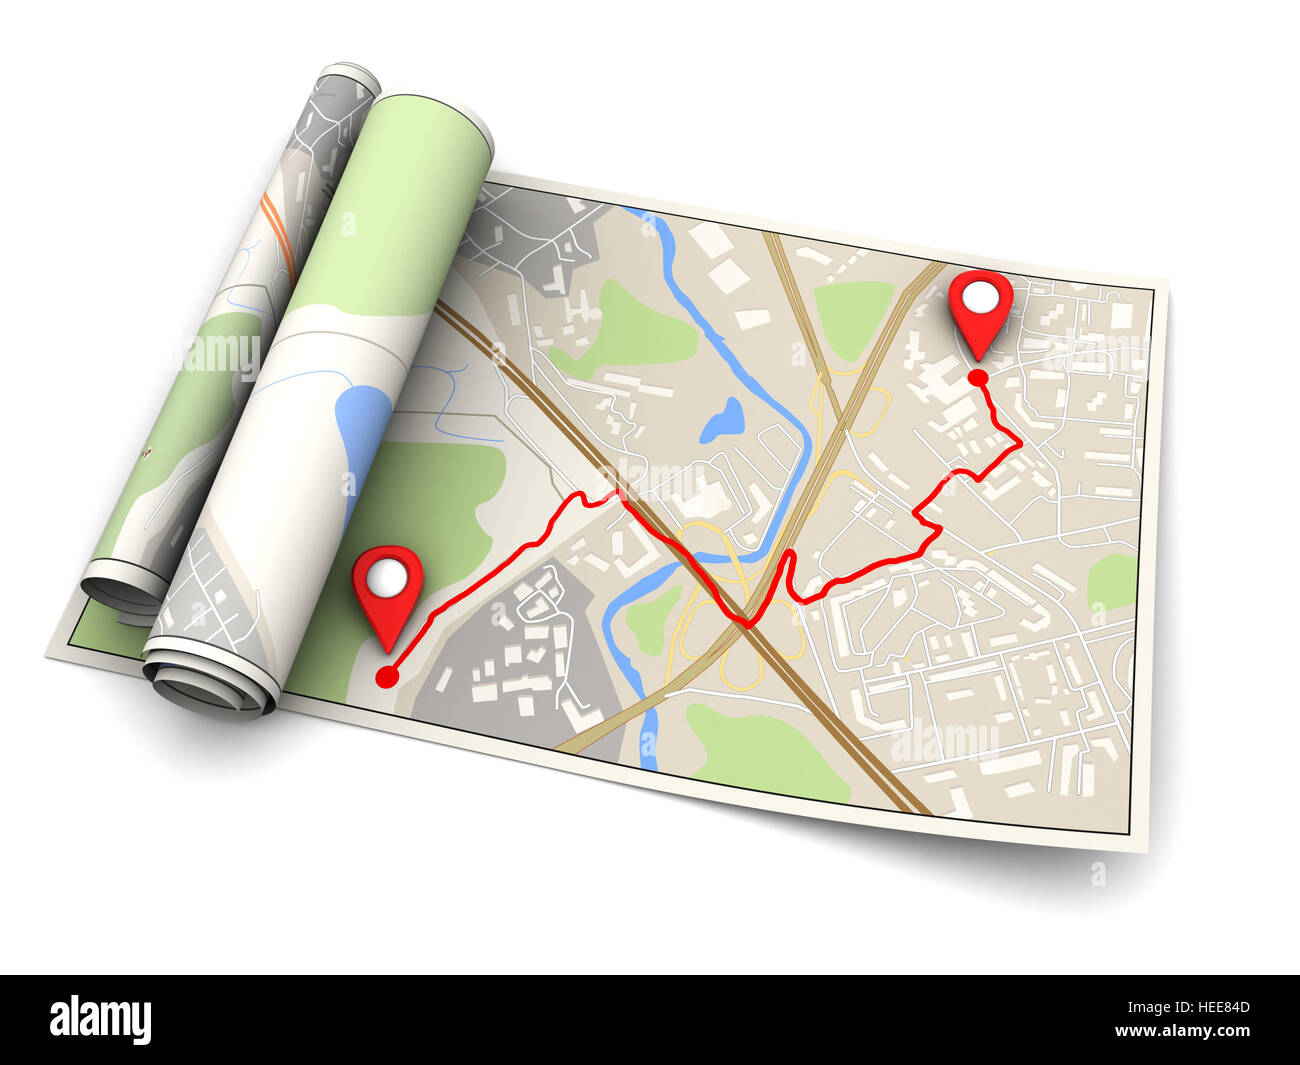 3d illustration of map with navigation route, over white background - Stock Image